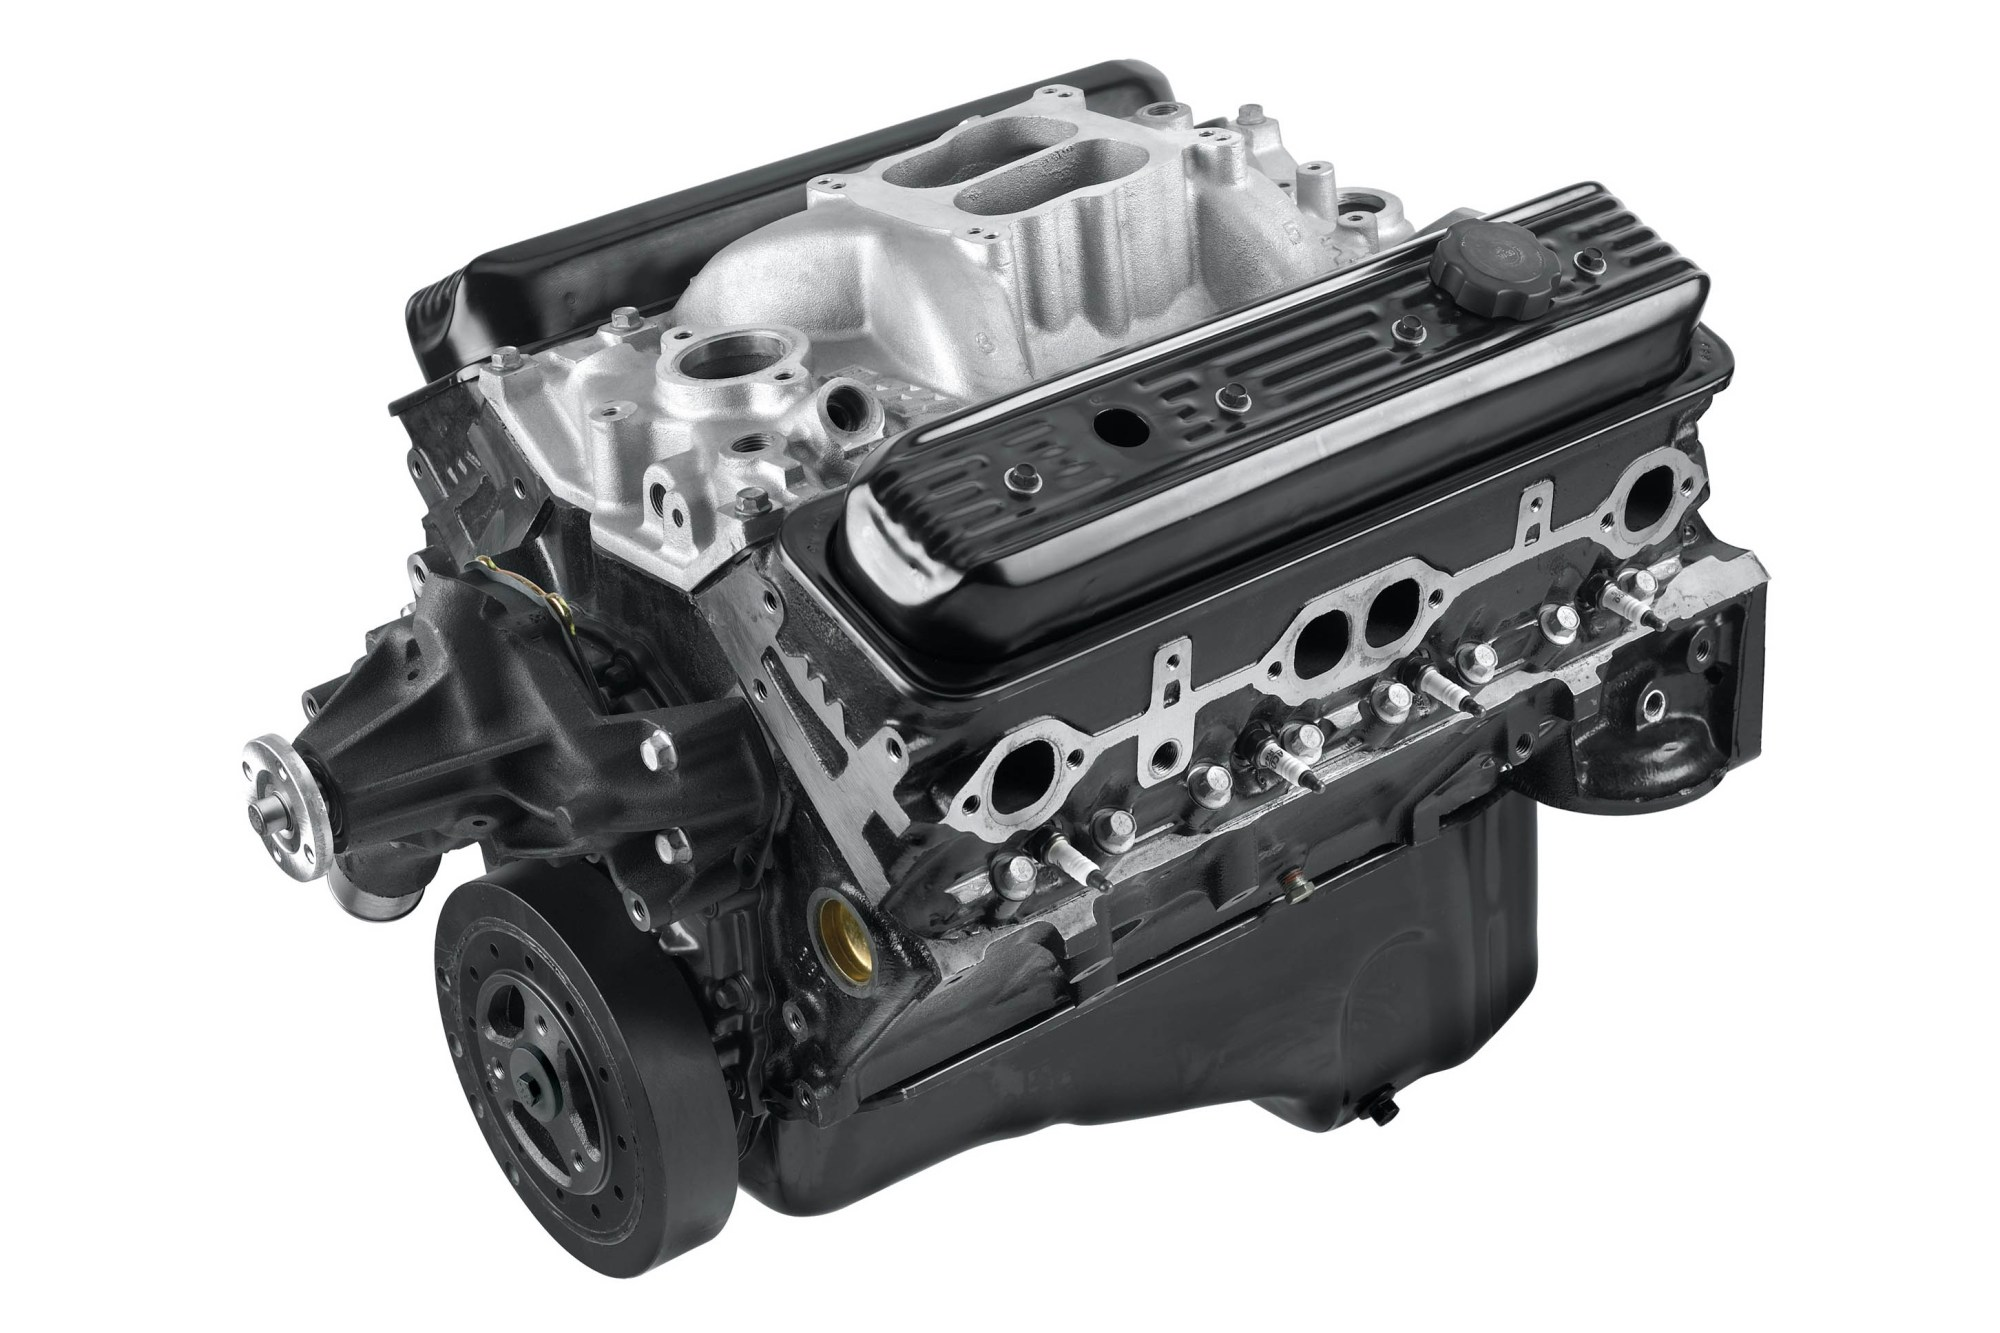 hight resolution of the gm ht383 crate engine from pace is a small package tuned for big torque and a good hi po replacement for third gen c k trucks